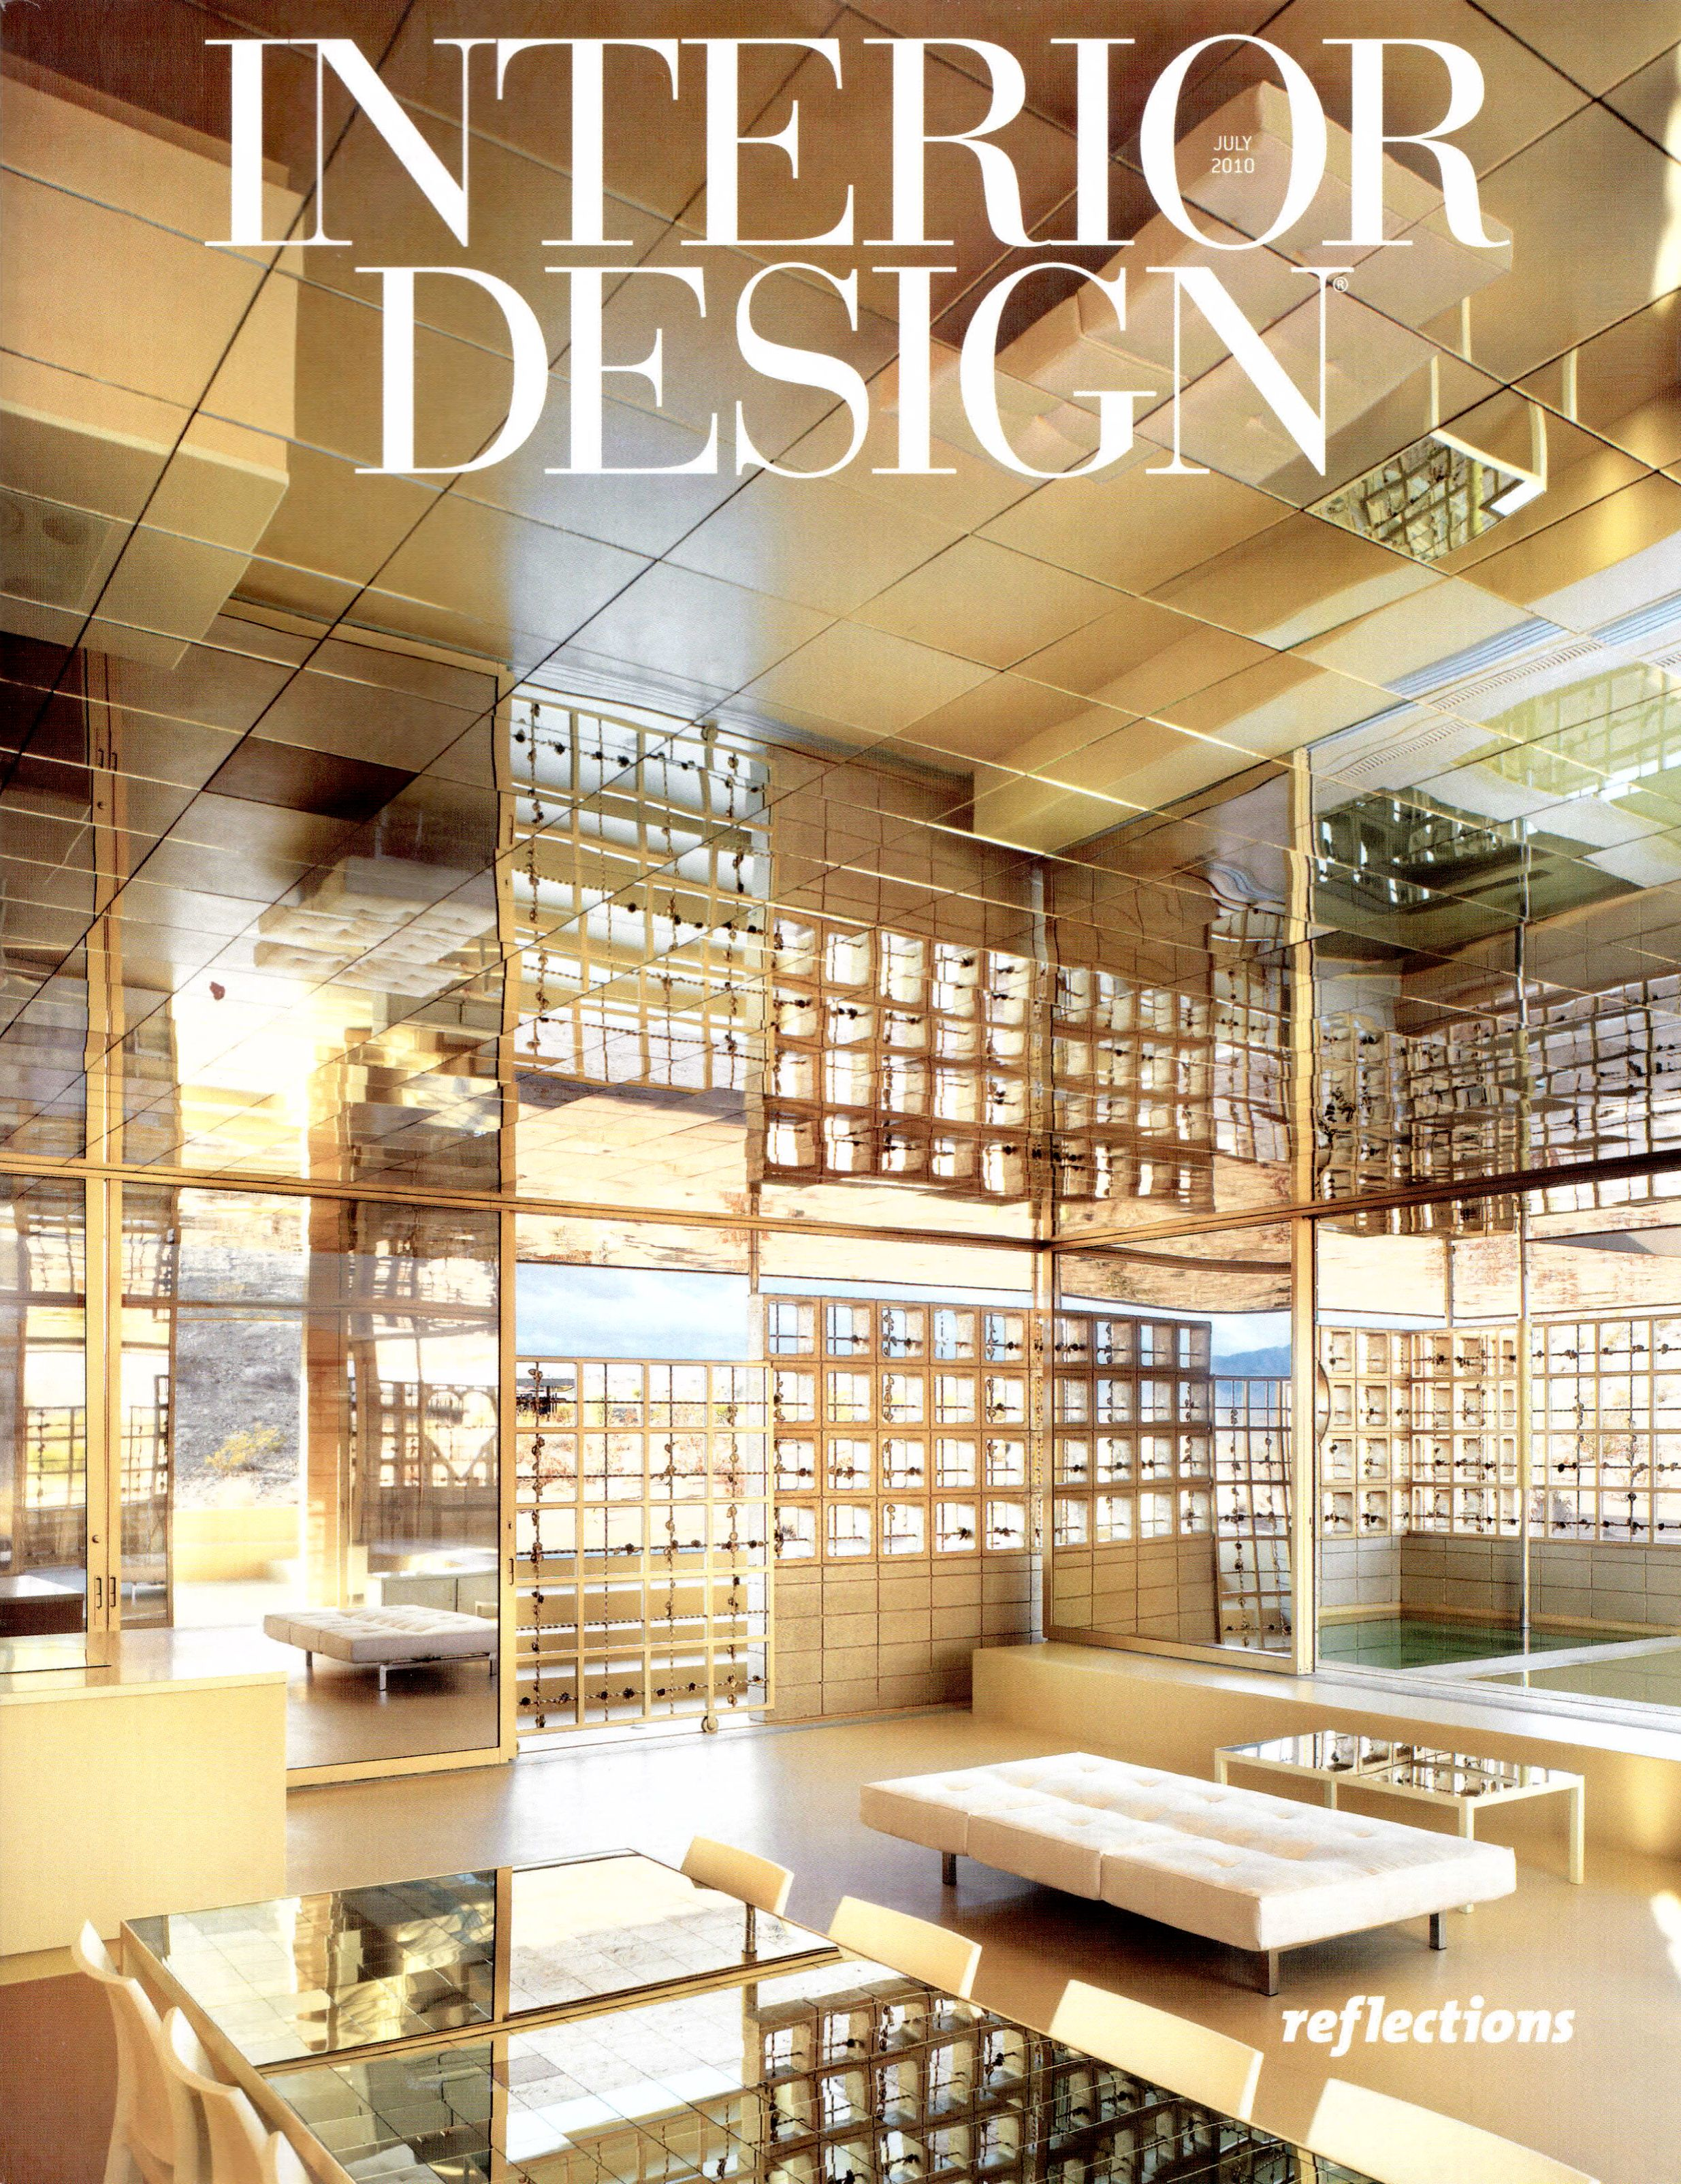 join the discussion on this interior design magazine in decozt home